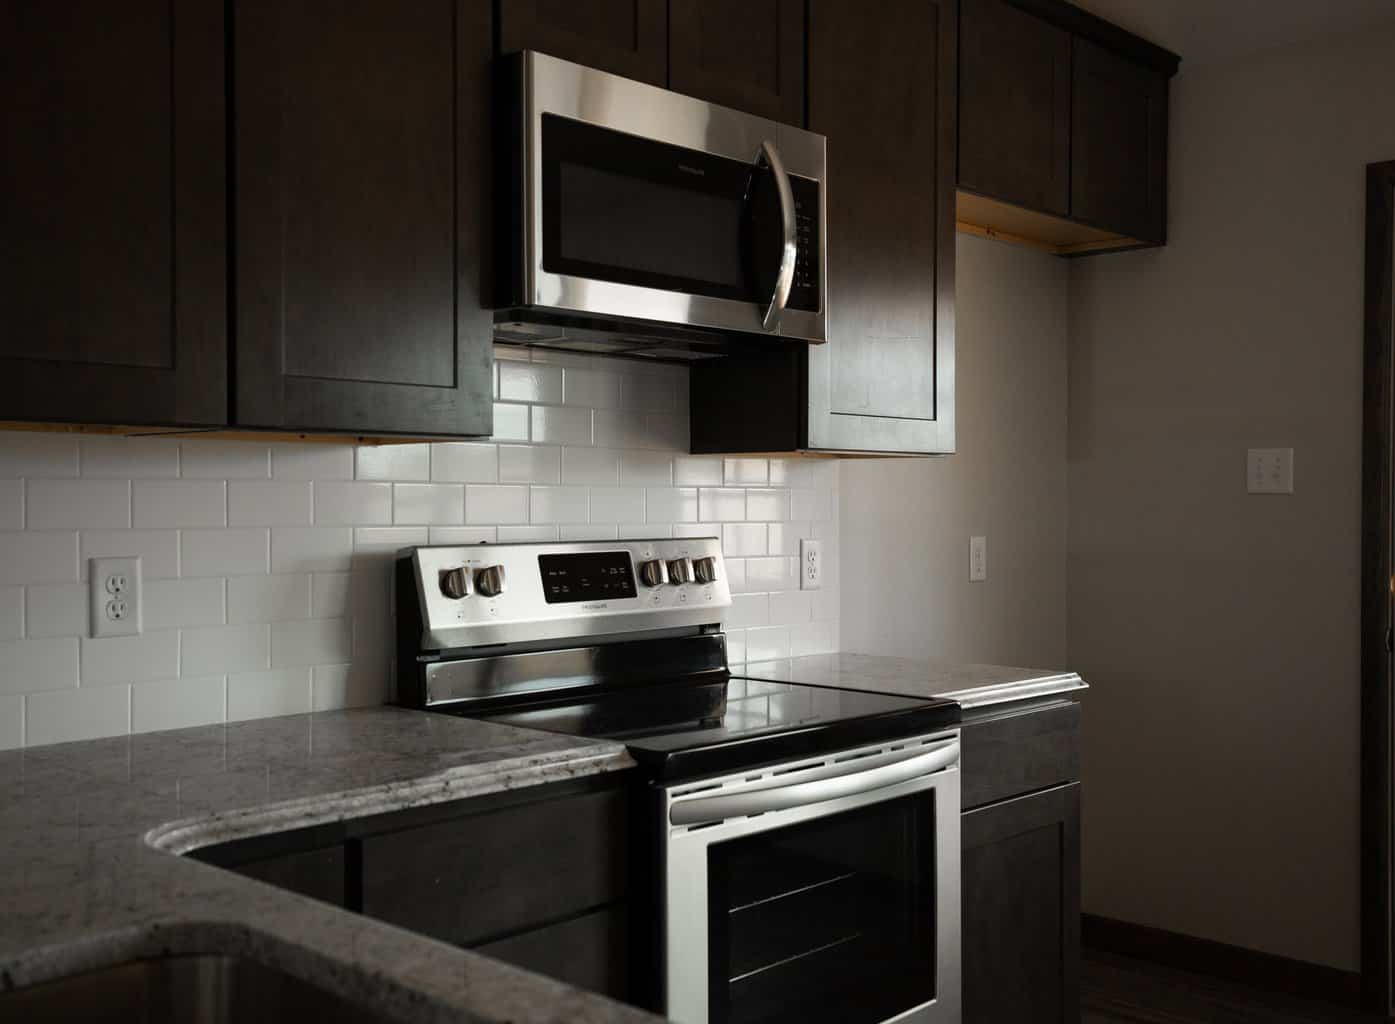 is it safe to use the self cleaning oven?